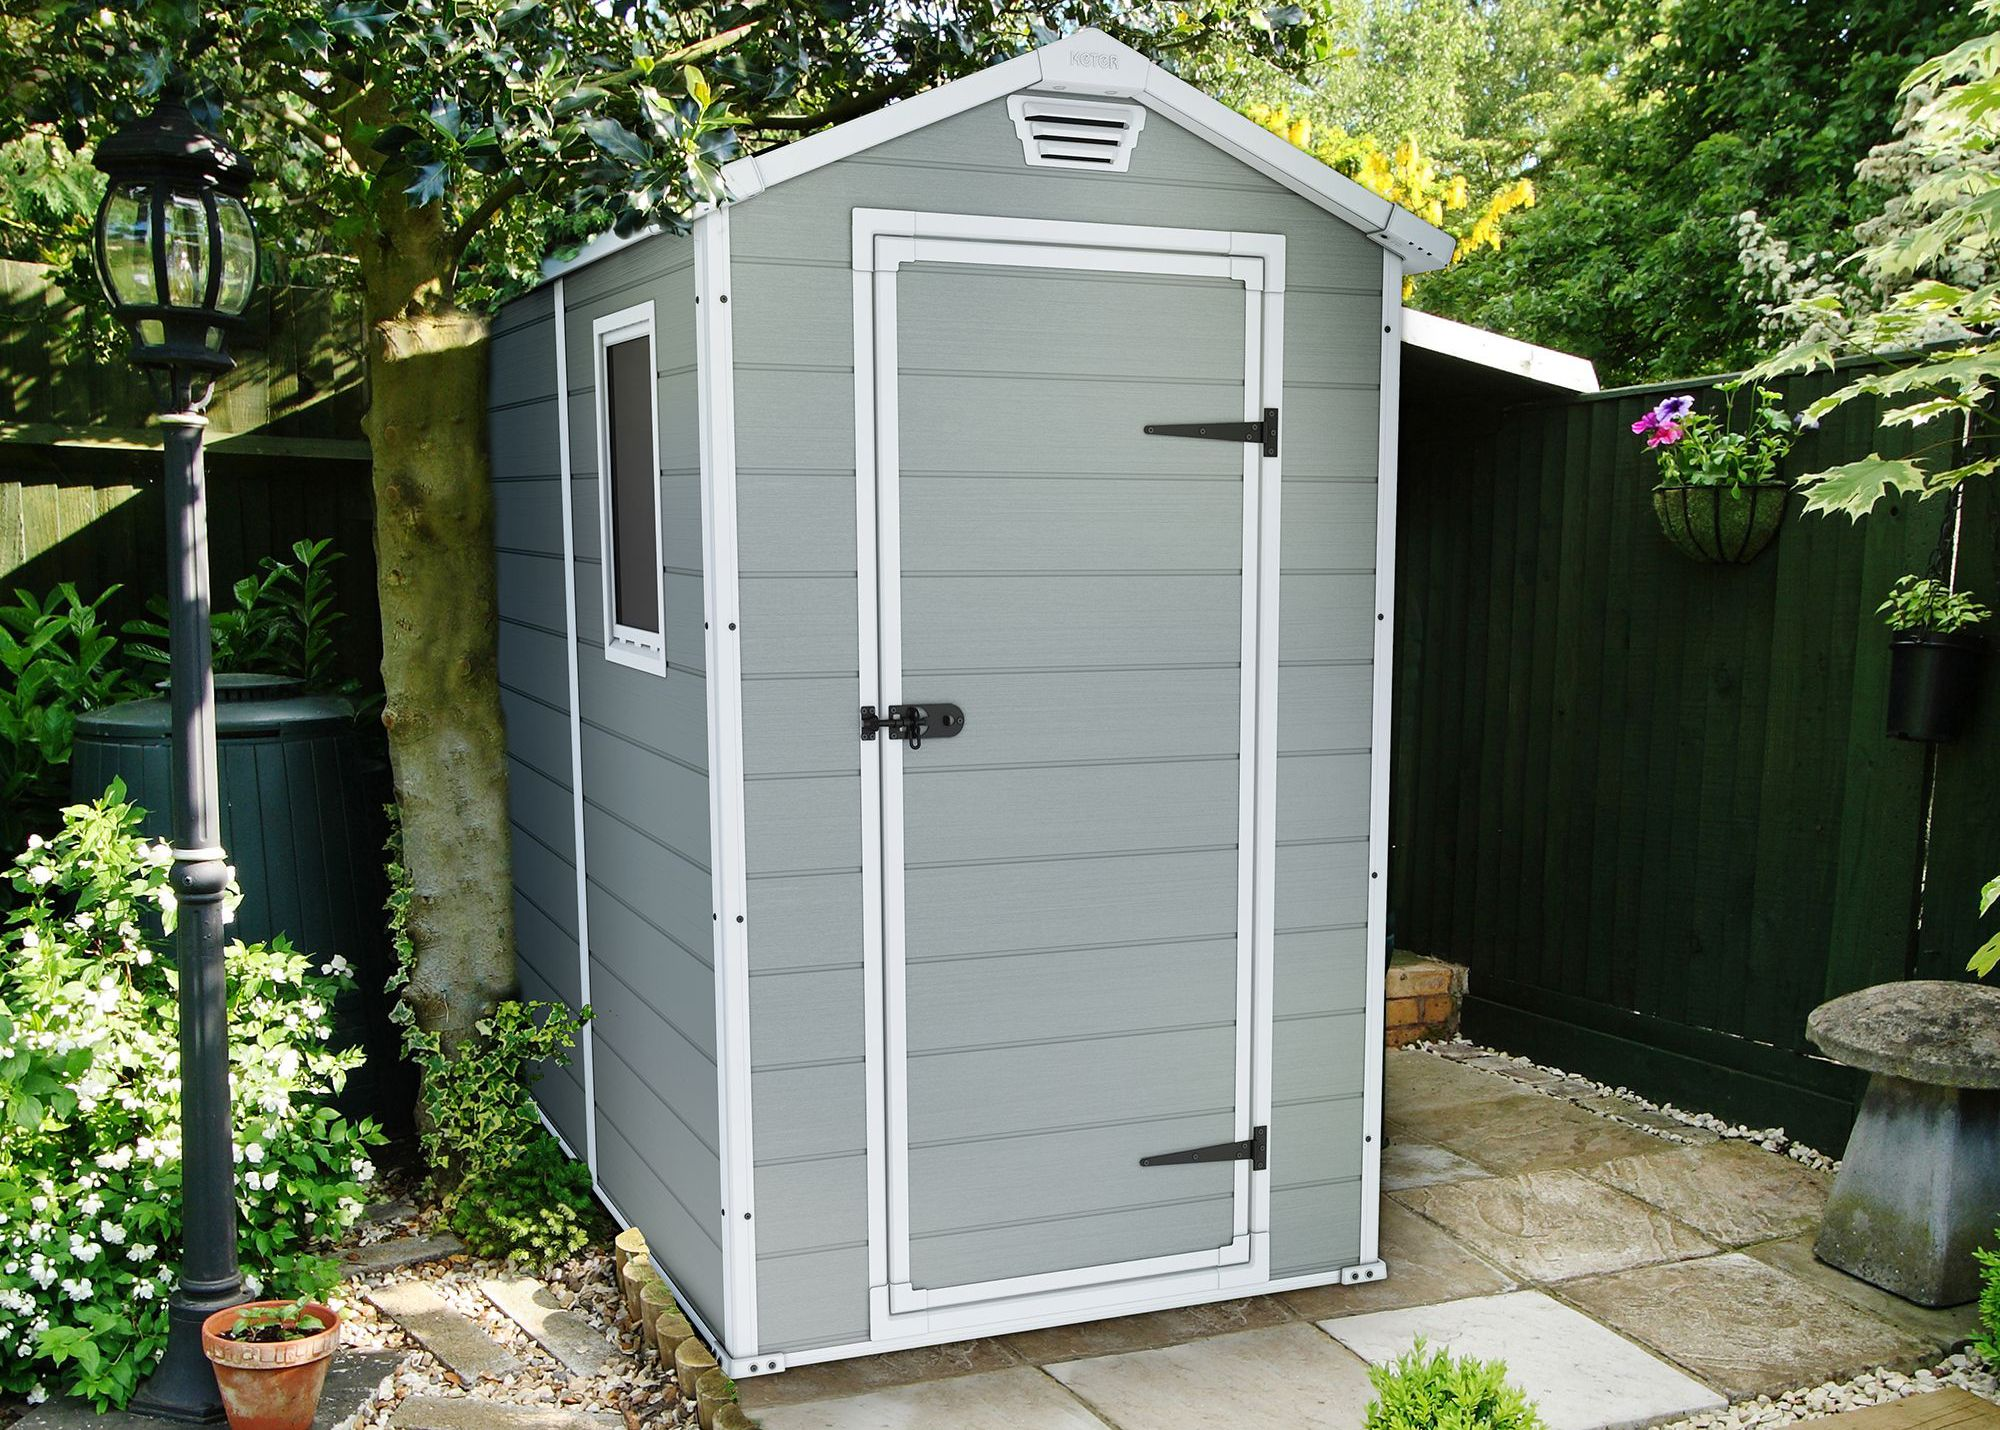 How to build a shed base | Ideas & Advice | DIY at B&Q